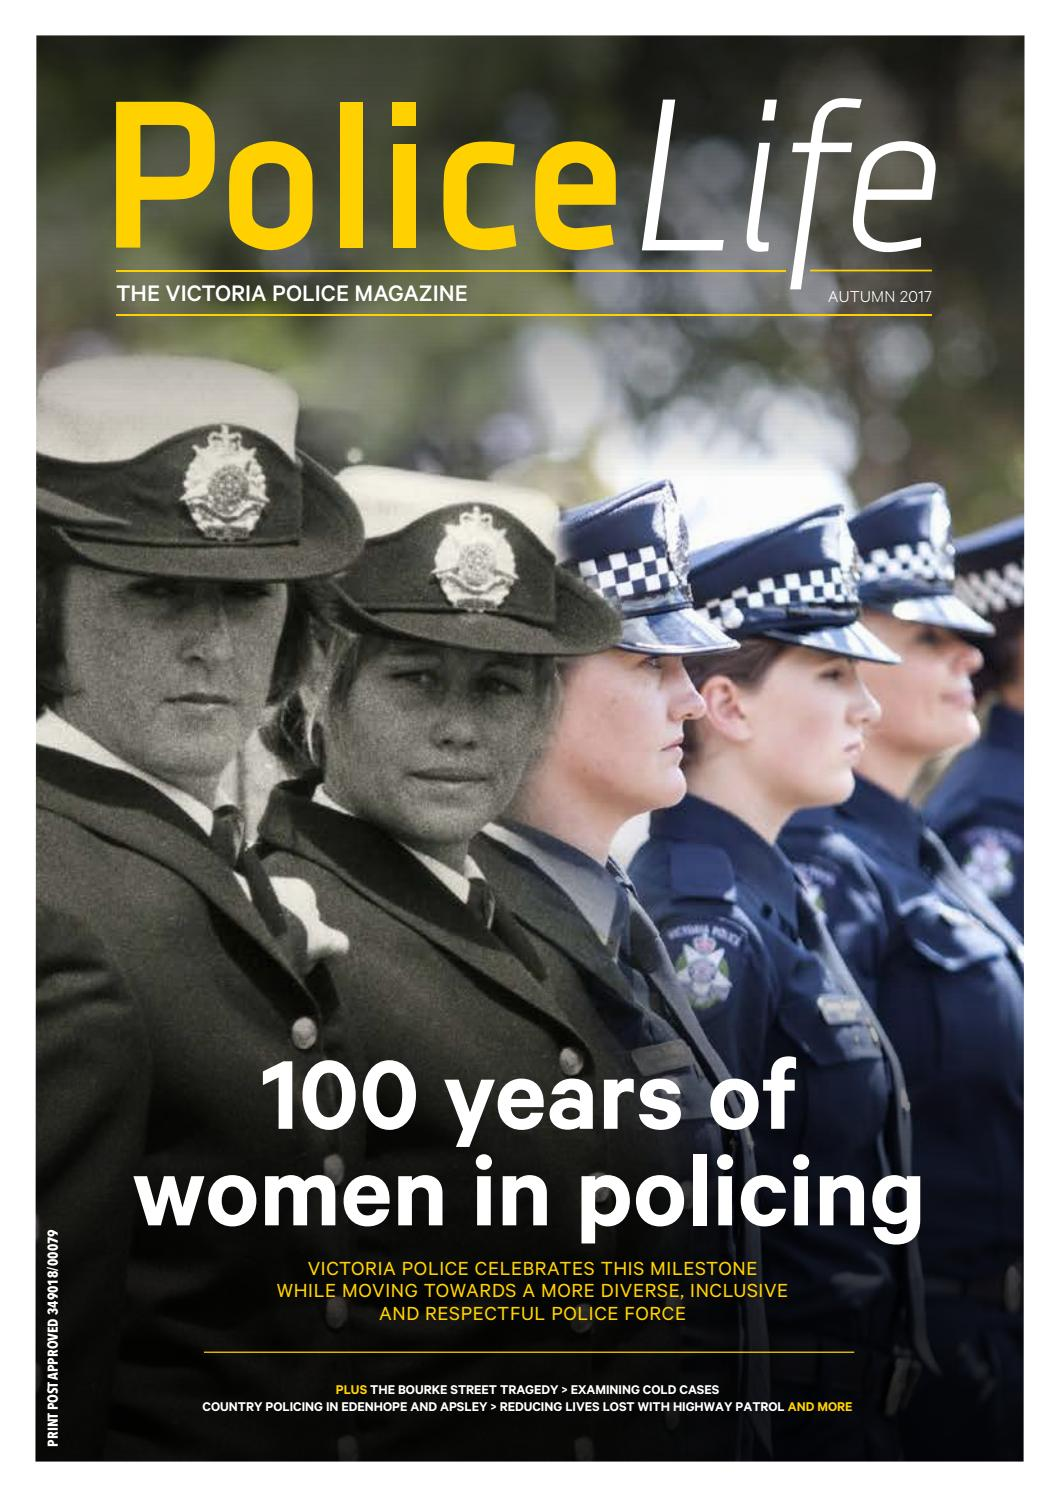 police life autumn 2017 by victoria police